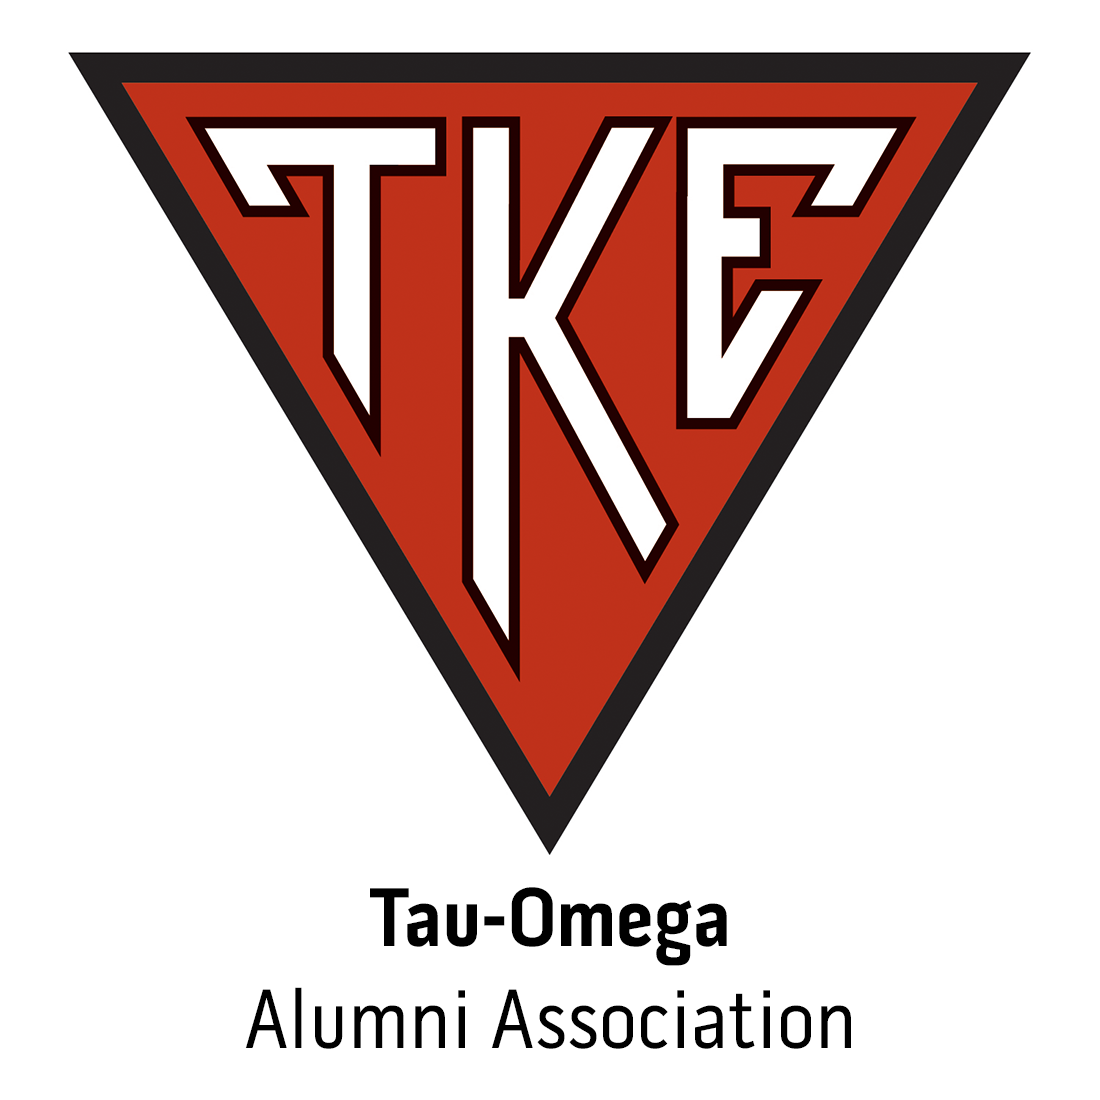 Tau-Omega Alumni Association at Carleton University